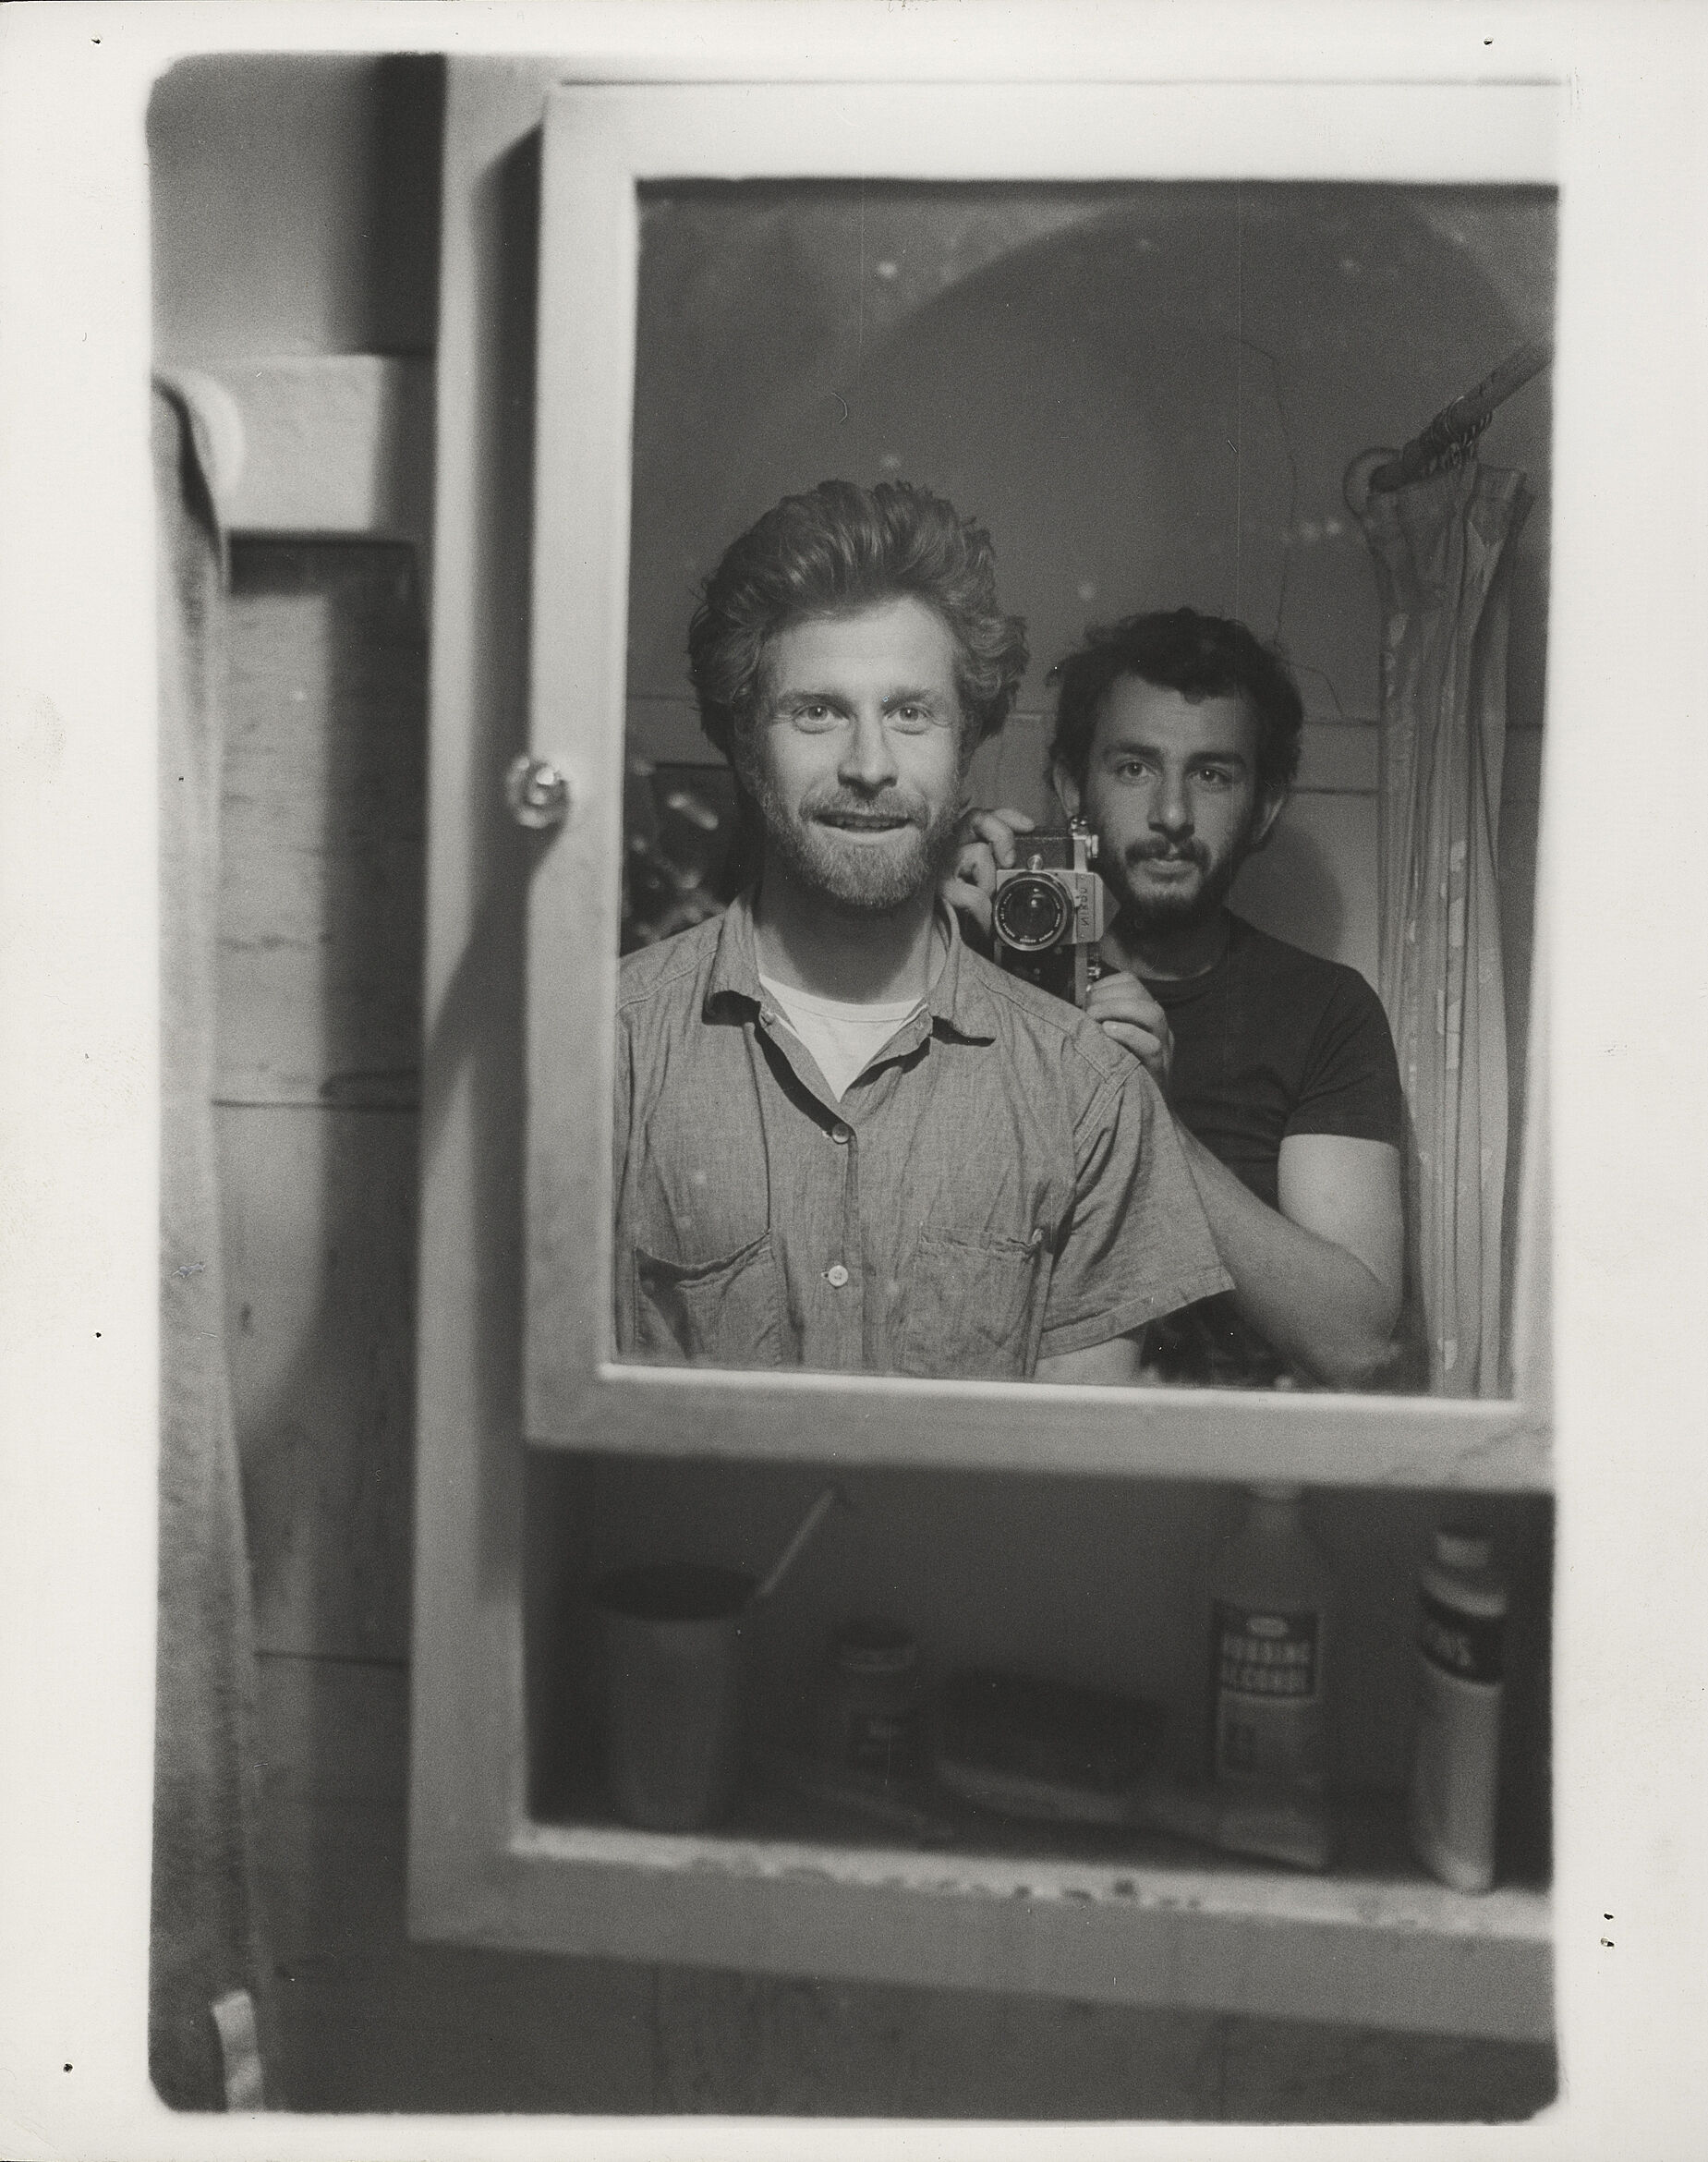 Two men looking into a mirror, one holding a camera.